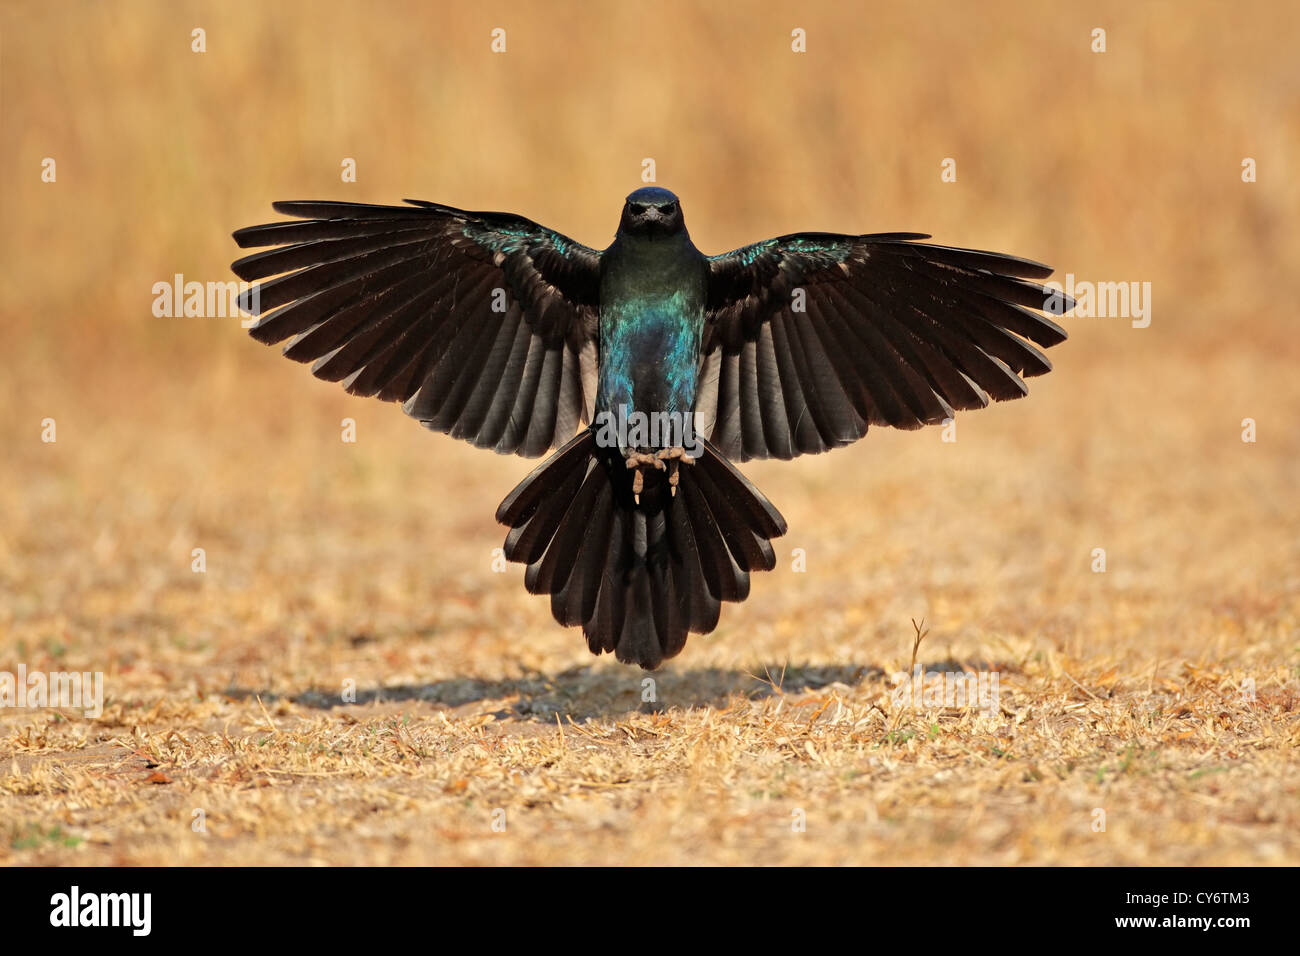 Burchell's starling (Lamprotornis australis) landing with outstretched wings, South Africa - Stock Image